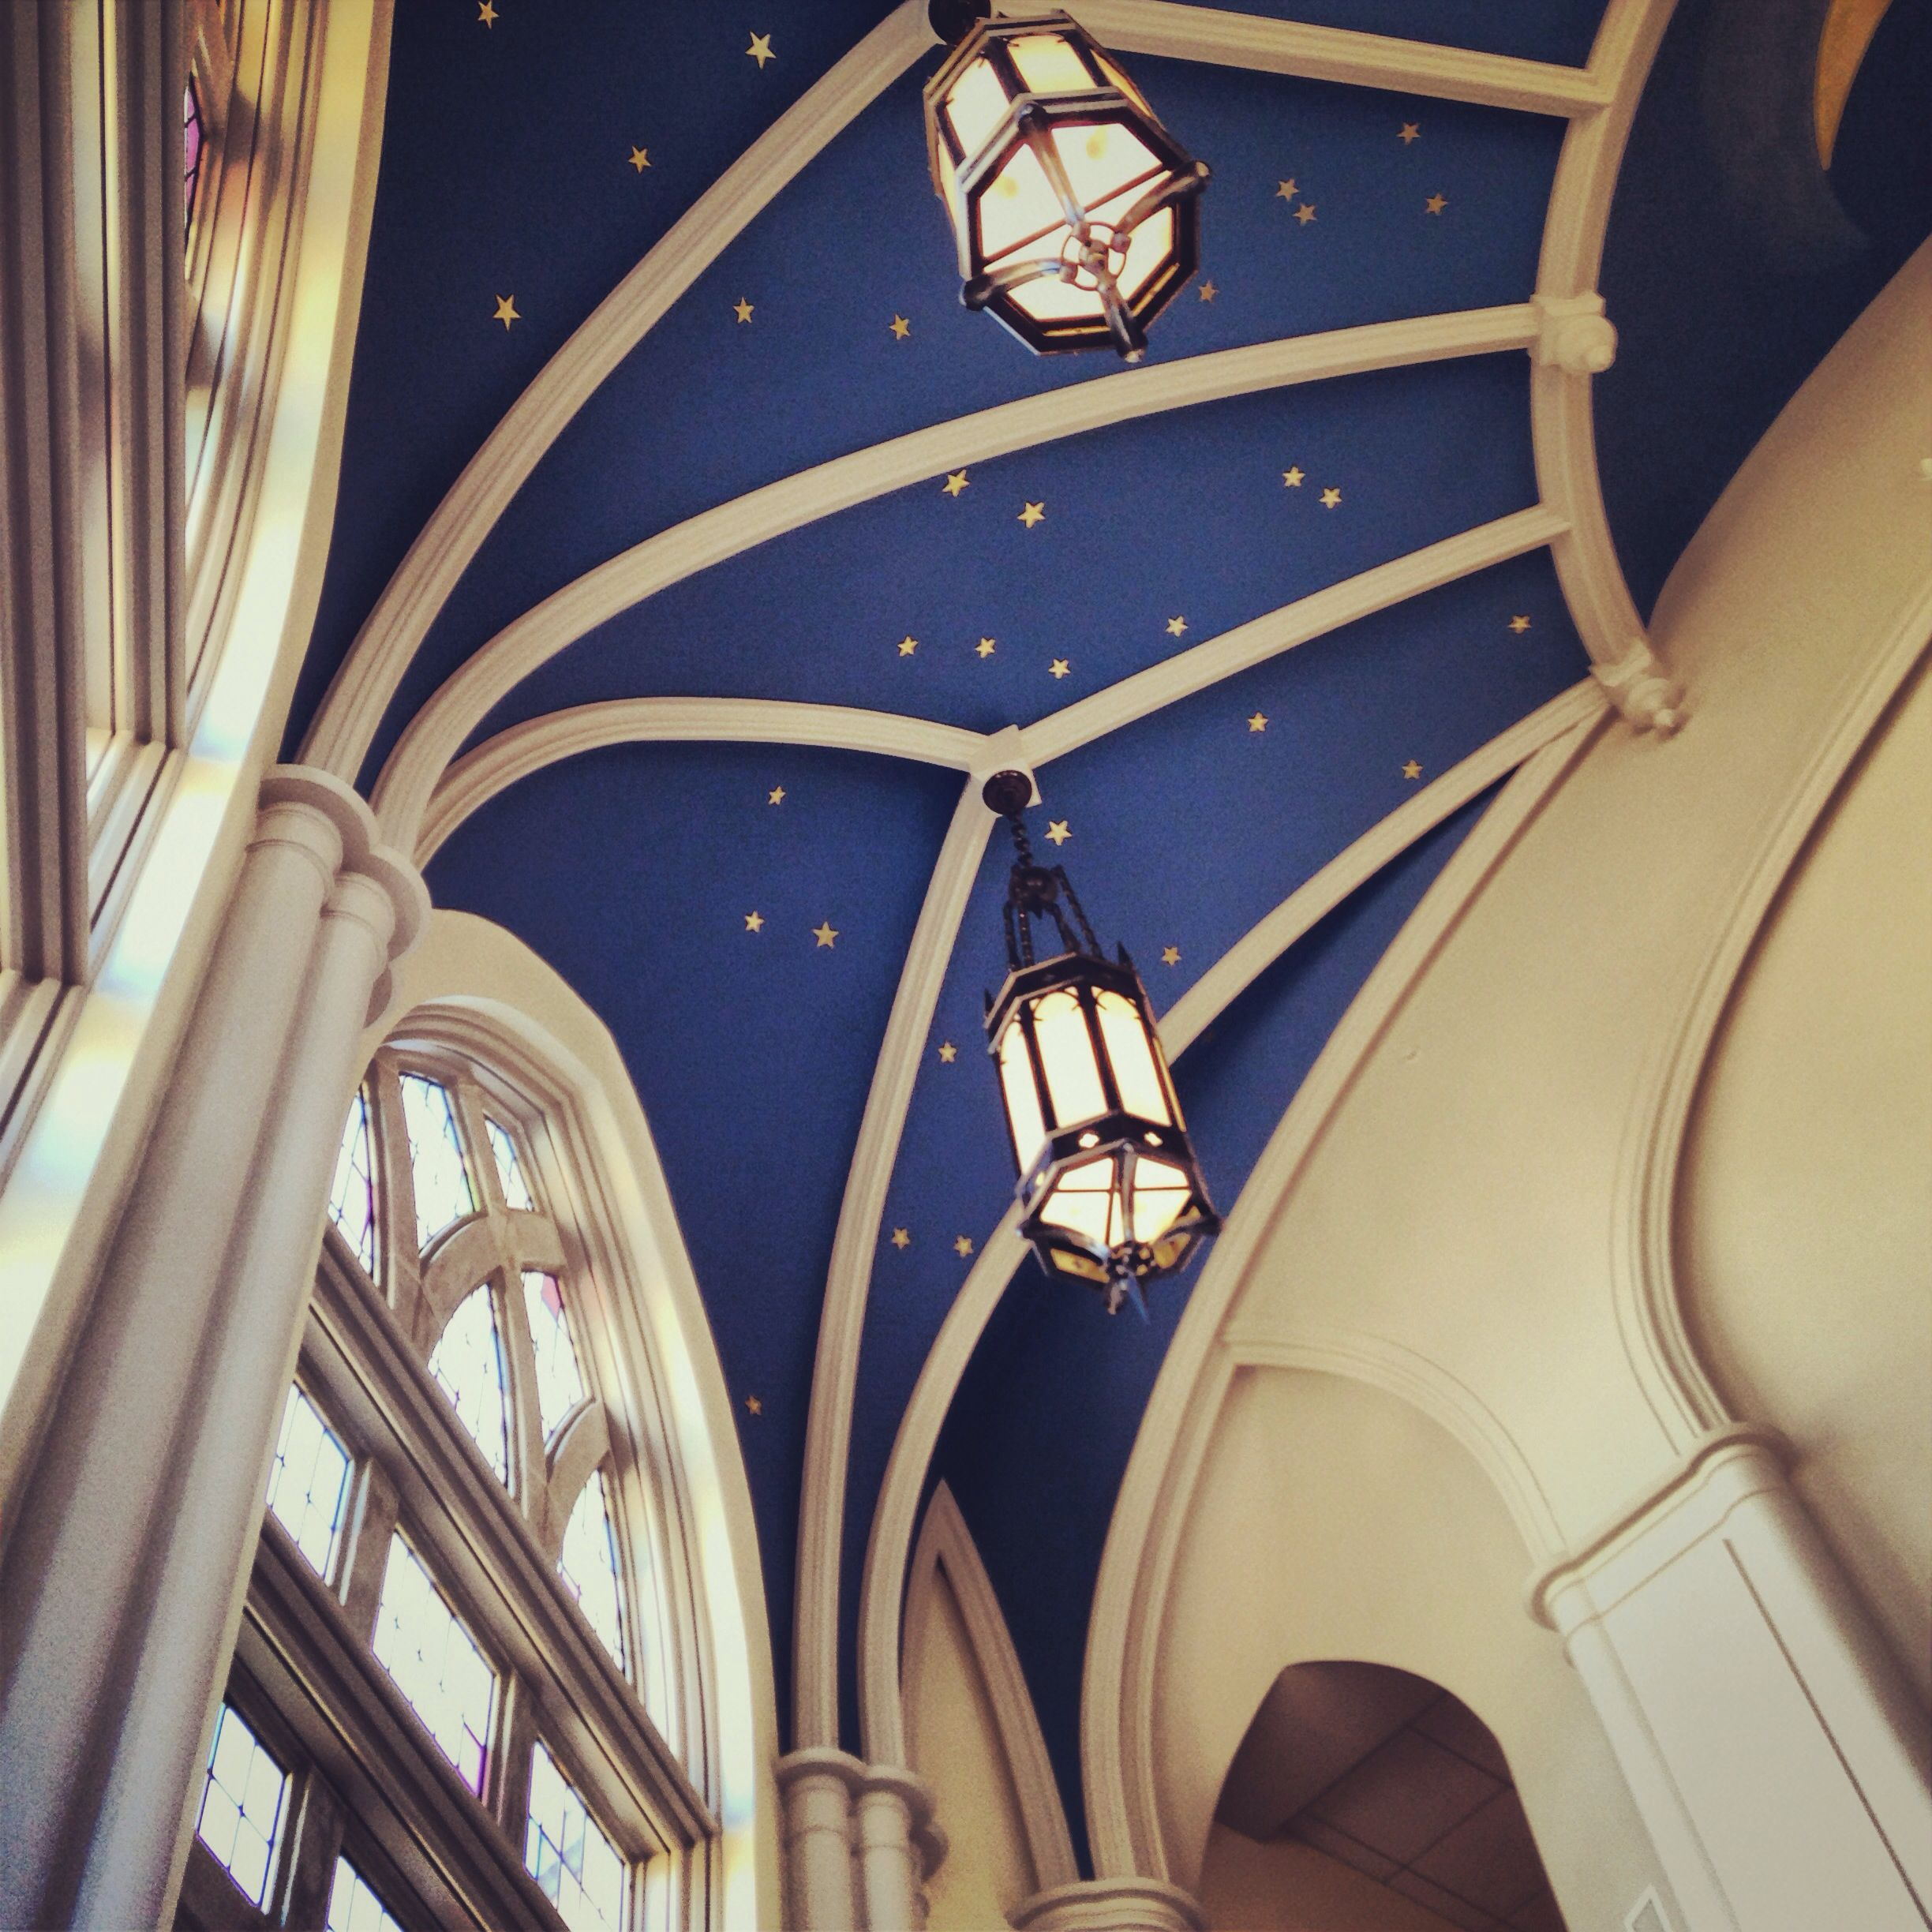 Our Library With Star Constellation Painted On The Ceiling